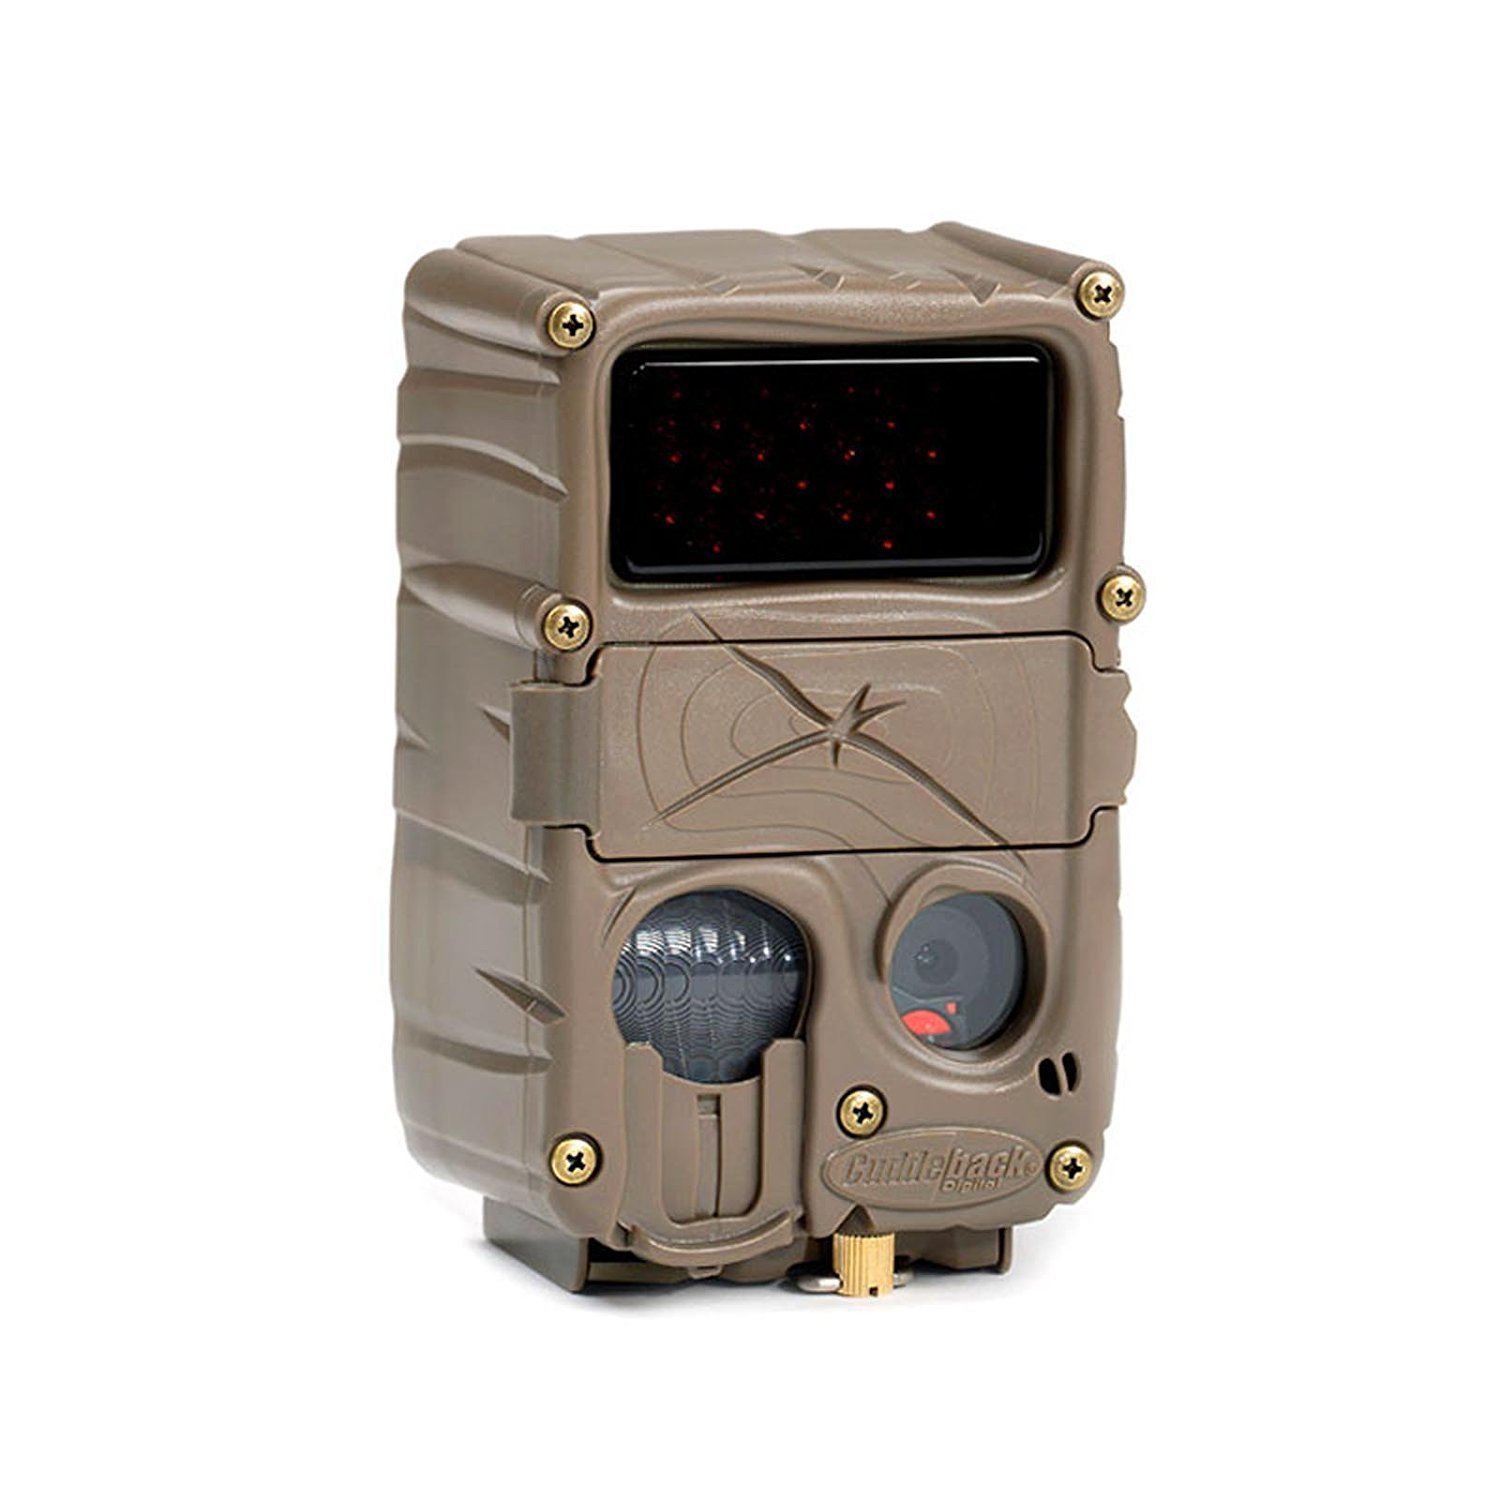 Cuddeback 20MP Black Flash No Glow Infrared Trail Game Hunting Camera with Mounting Bracket and Strap by Cuddeback (Image #2)